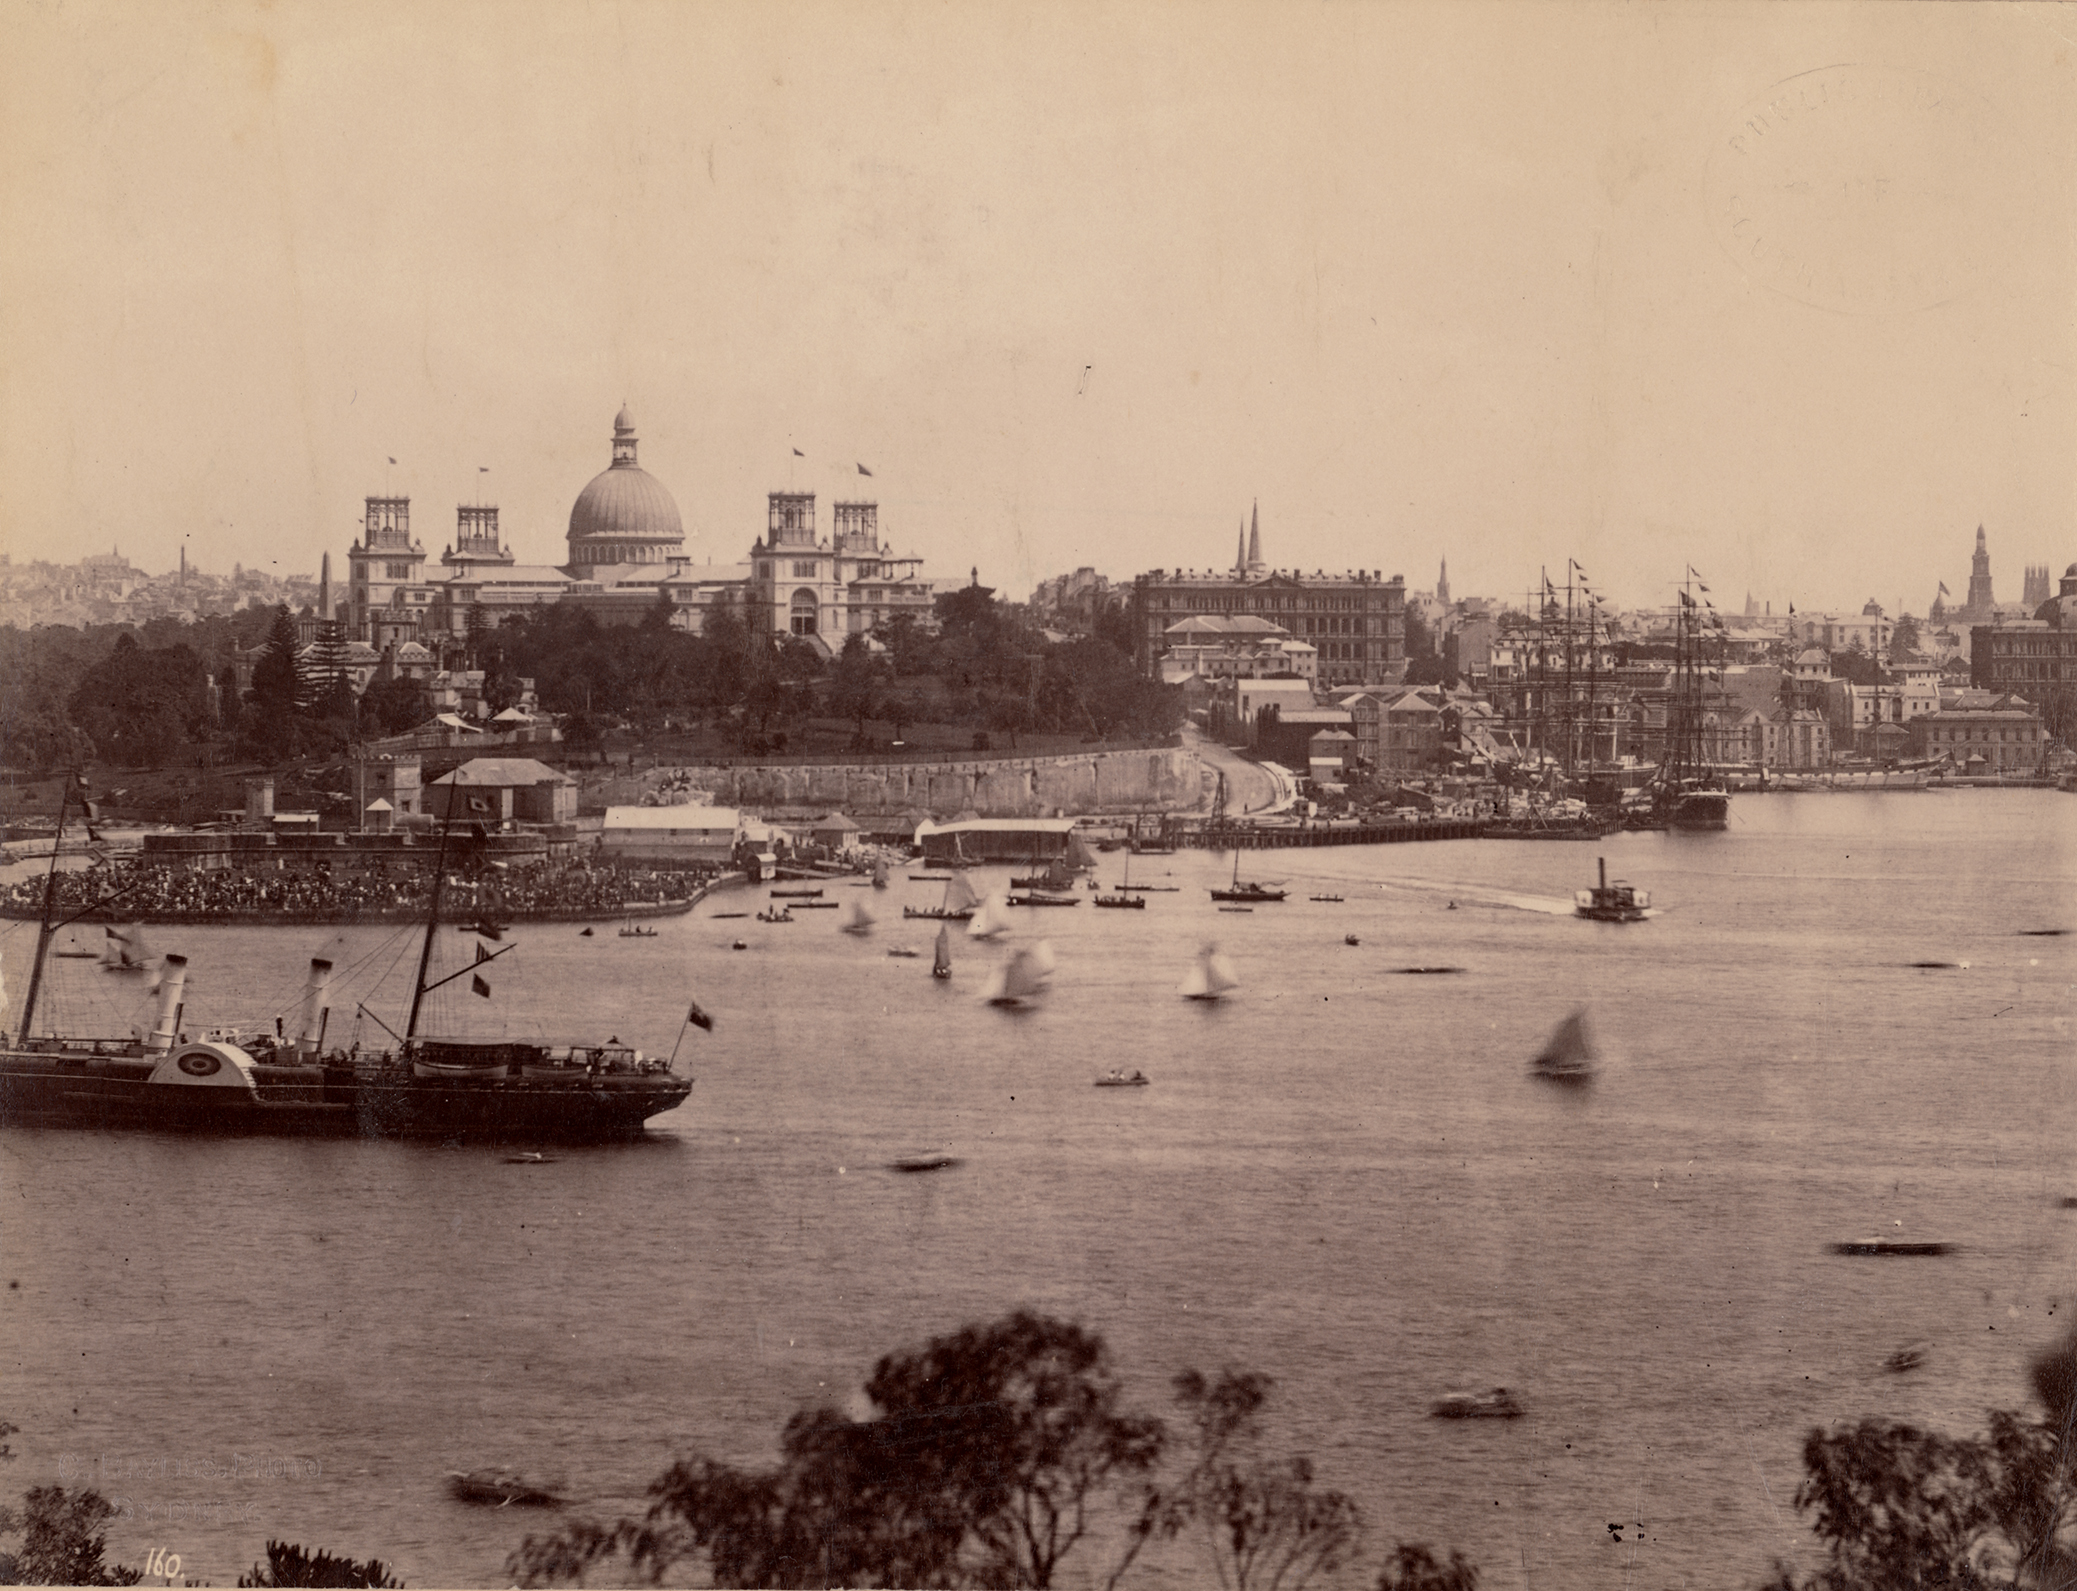 Drawn palace sydney garden Photograph Stories Garden from construction